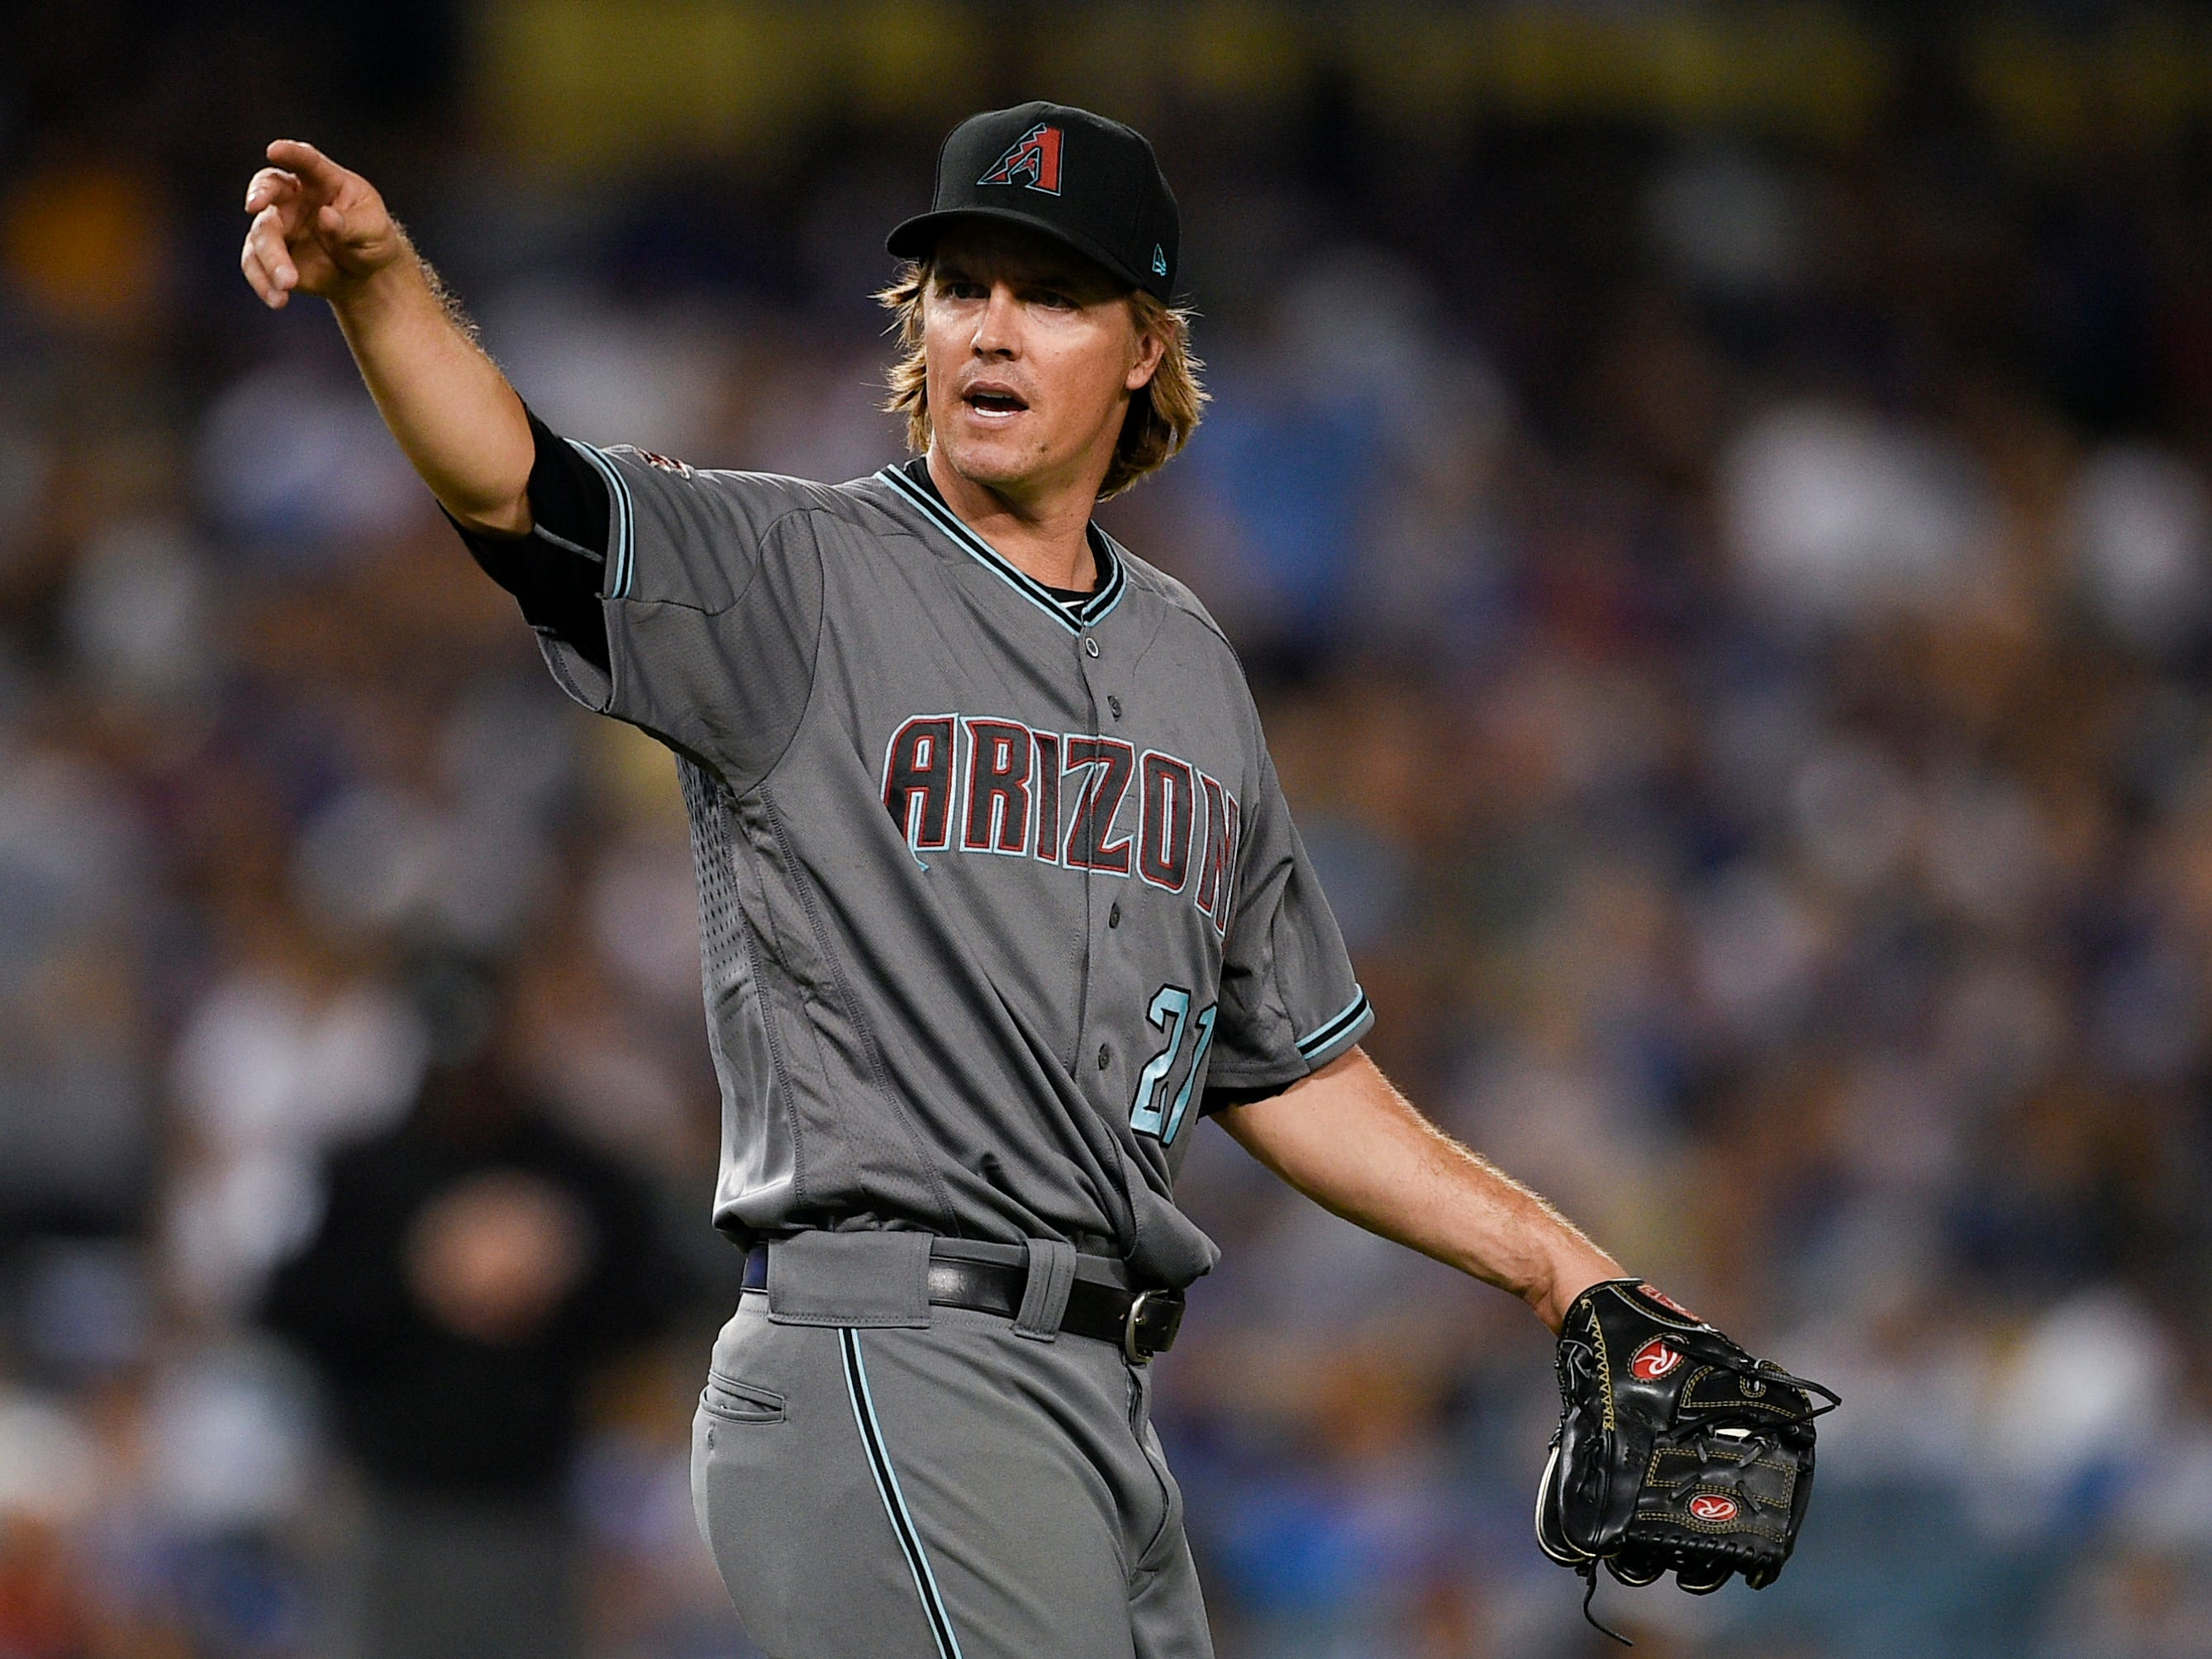 Aug 31, 2018: Arizona Diamondbacks starting pitcher Zack Greinke (21) reacts after hitting Los Angeles Dodgers third baseman Justin Turner (not pictured) on a pitch during the fifth inning at Dodger Stadium.